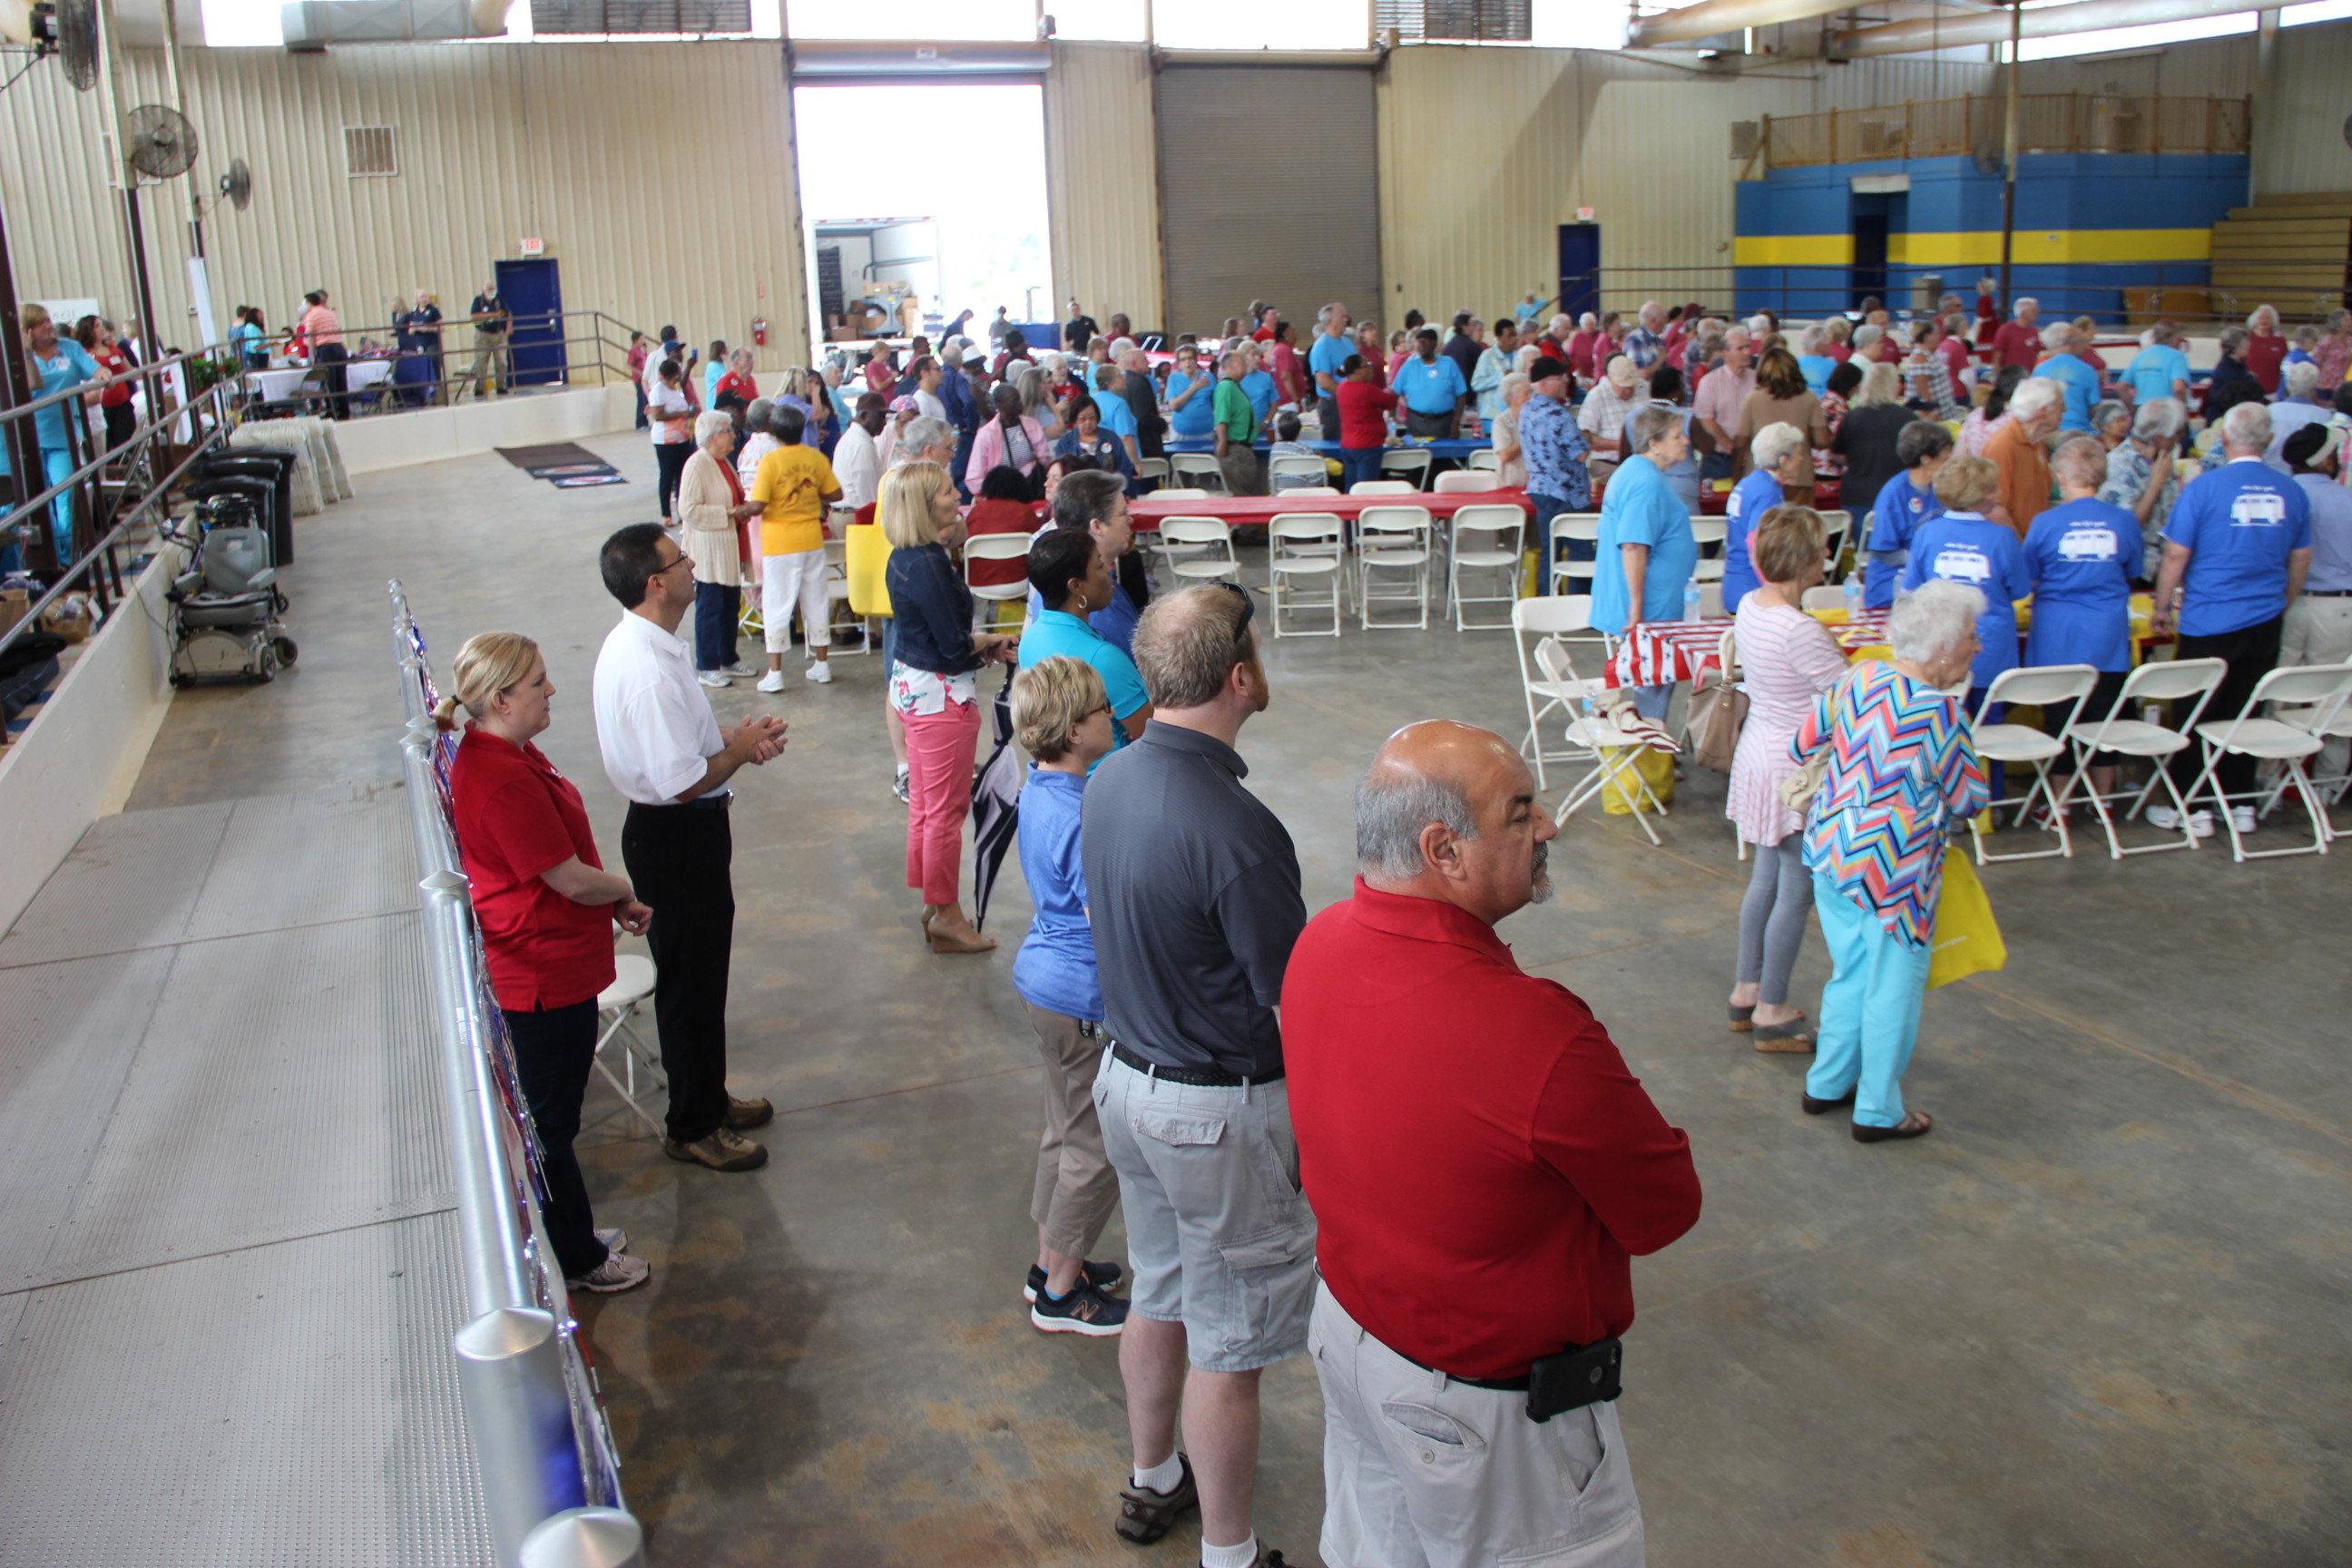 Image inside the Exhibition Center during the 2017 Senior Picnic